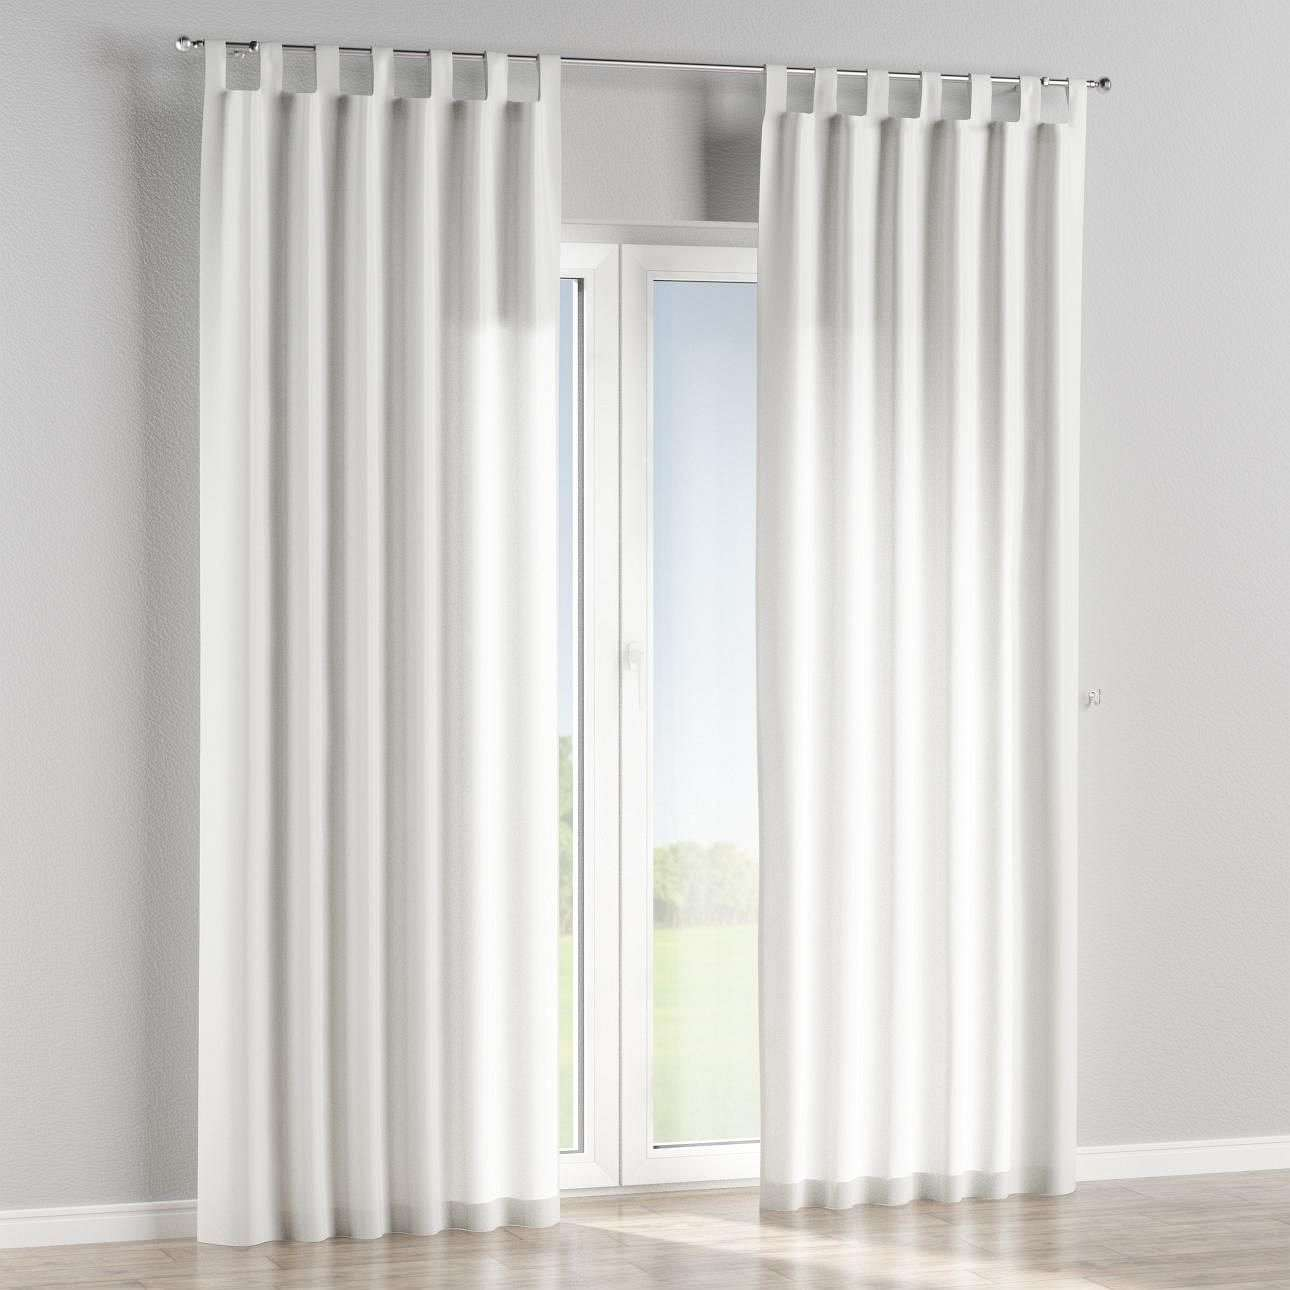 Tab top lined curtains in collection Victoria, fabric: 130-03